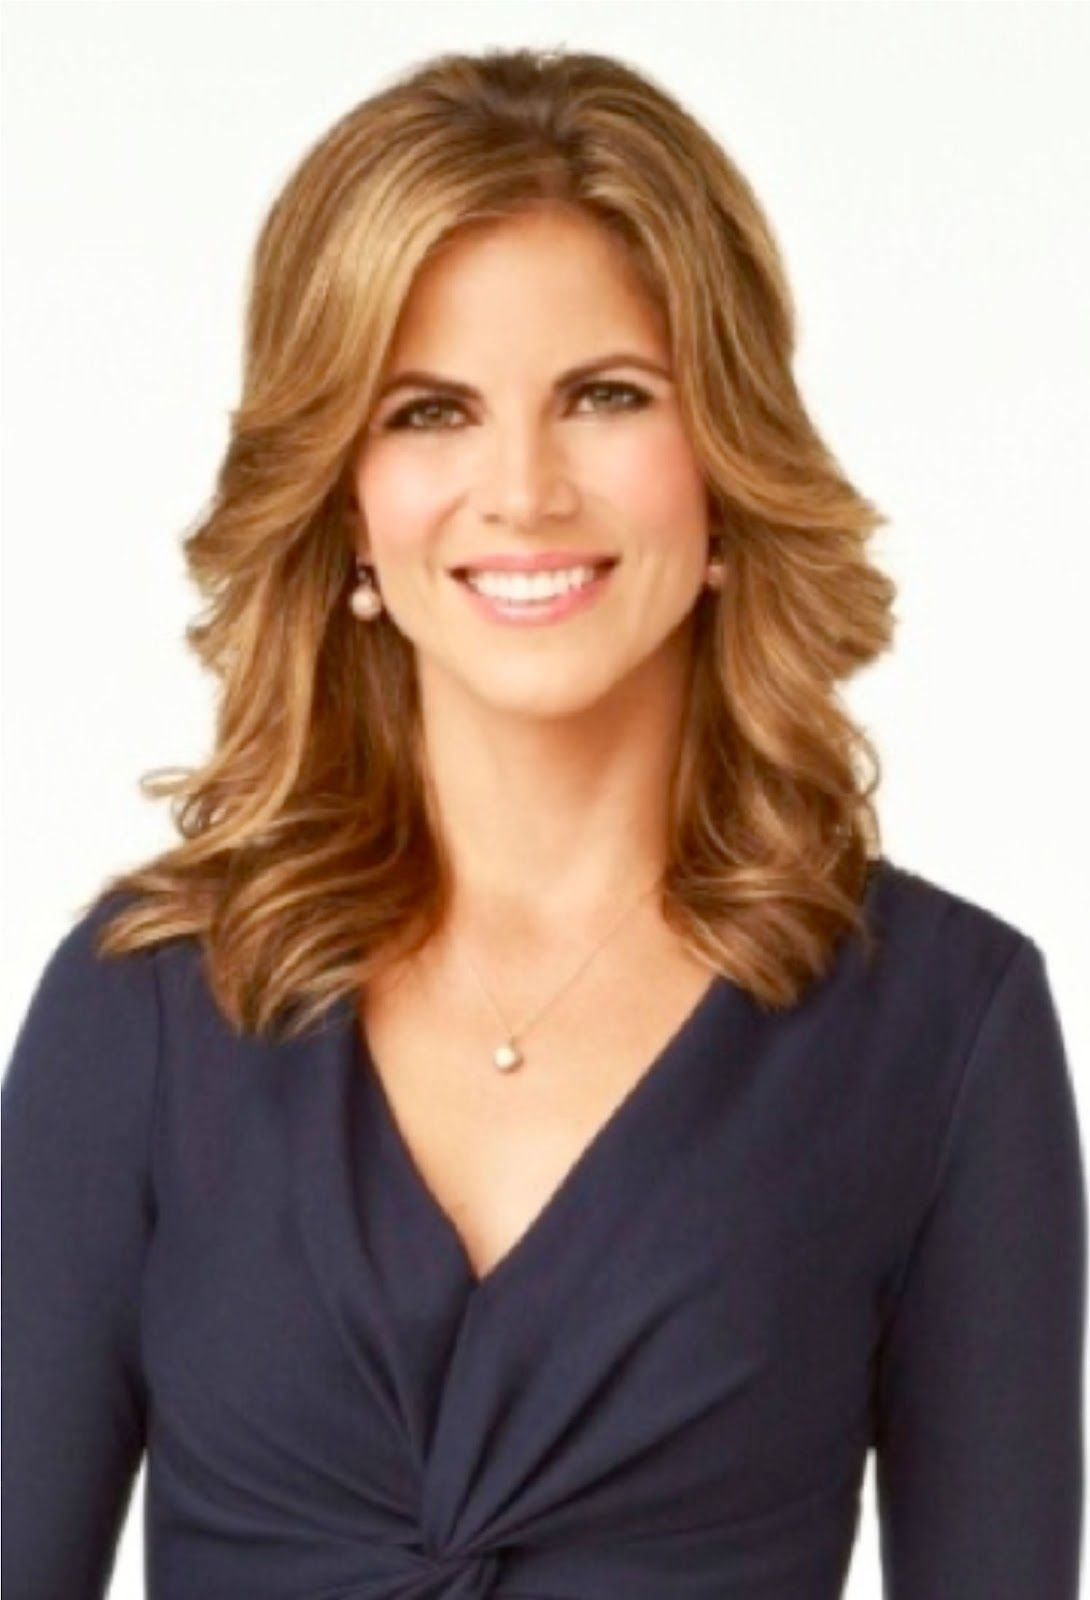 natalie morales-rhodes joe rhodesnatalie morales instagram, natalie morales leather, natalie morales wiki, natalie morales actress, natalie morales journalist, natalie morales leather pants, natalie morales, natalie morales twitter, natalie morales family, natalie morales white collar, natalie morales salary, natalie morales husband, natalie morales salary on the today show, natalie morales hot, natalie morales fired, natalie morales matt lauer, natalie morales legs, natalie morales-rhodes joe rhodes, natalie morales husband joe rhodes, natalie morales bikini